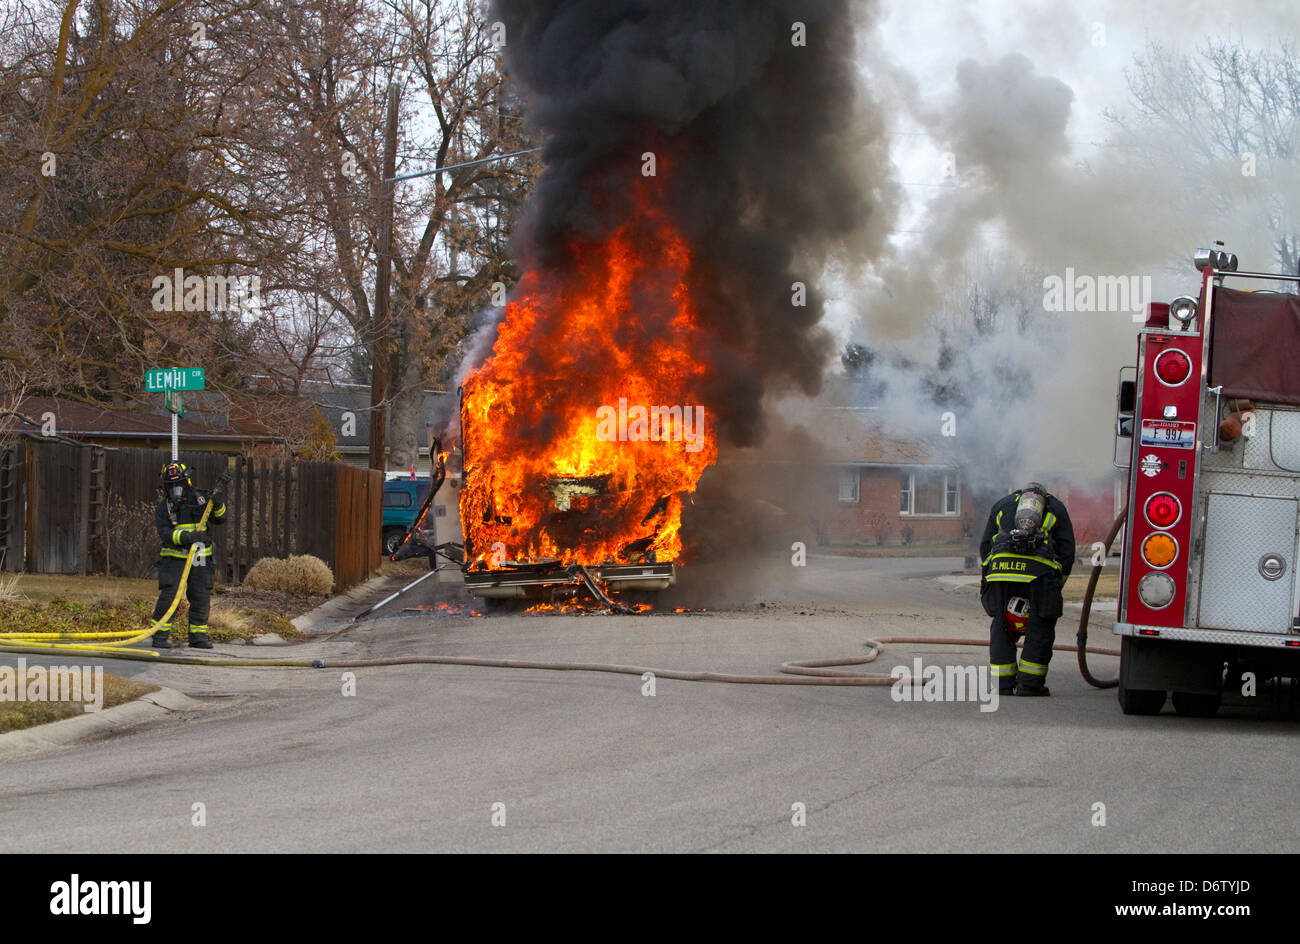 Firefighters putting out a motor home on fire in Boise, Idaho, USA. - Stock Image